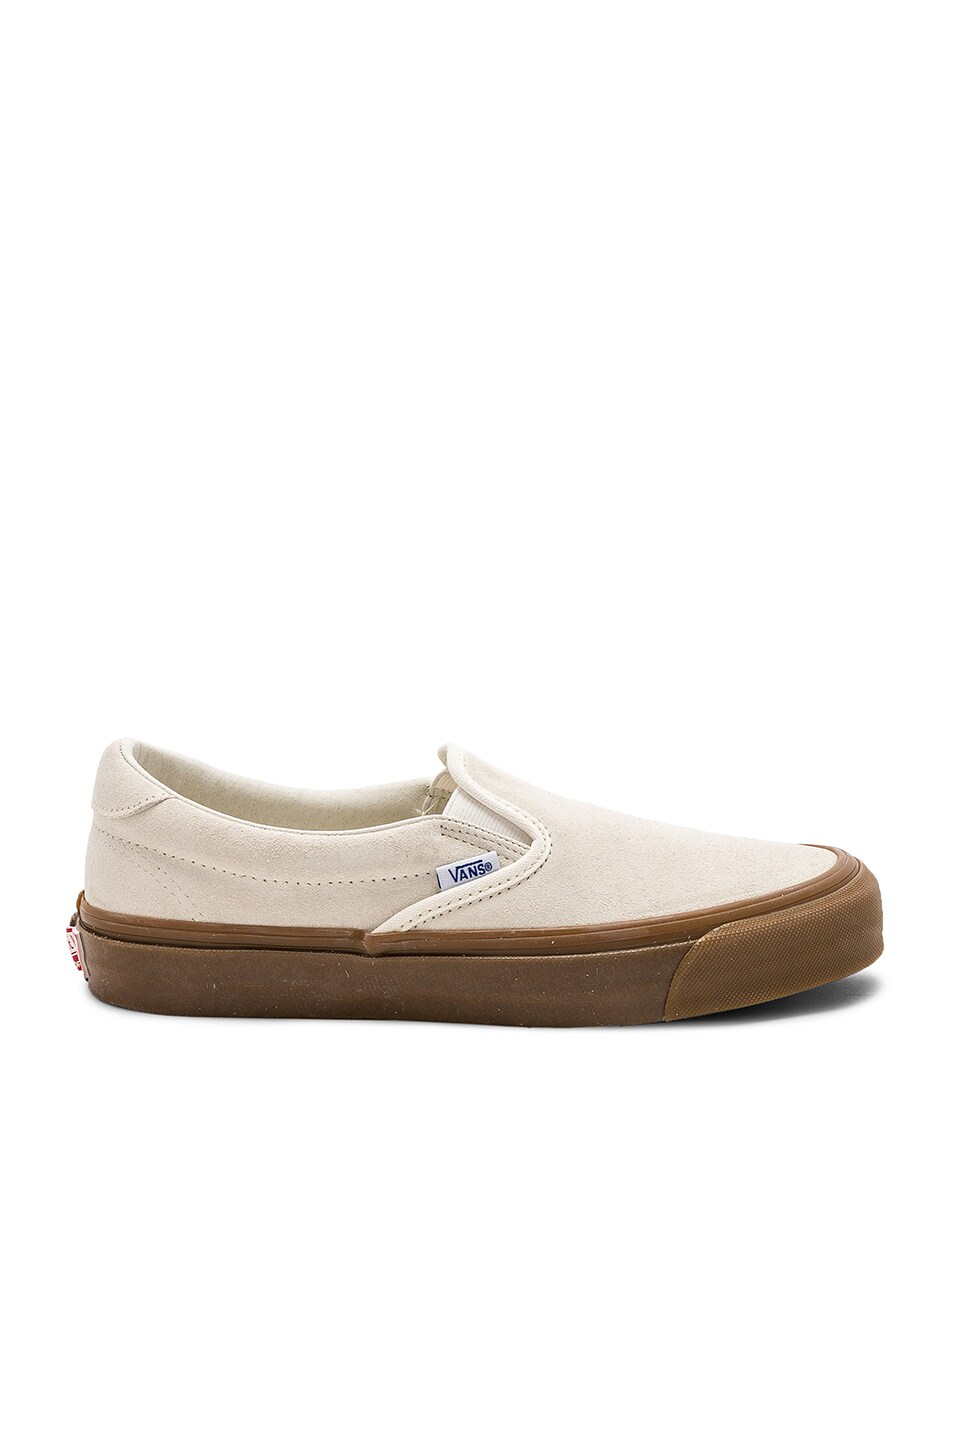 22c61bea3ff Image 2 of Vans Vault OG Slip-On 59 LX in Sugar Swizzle   Light